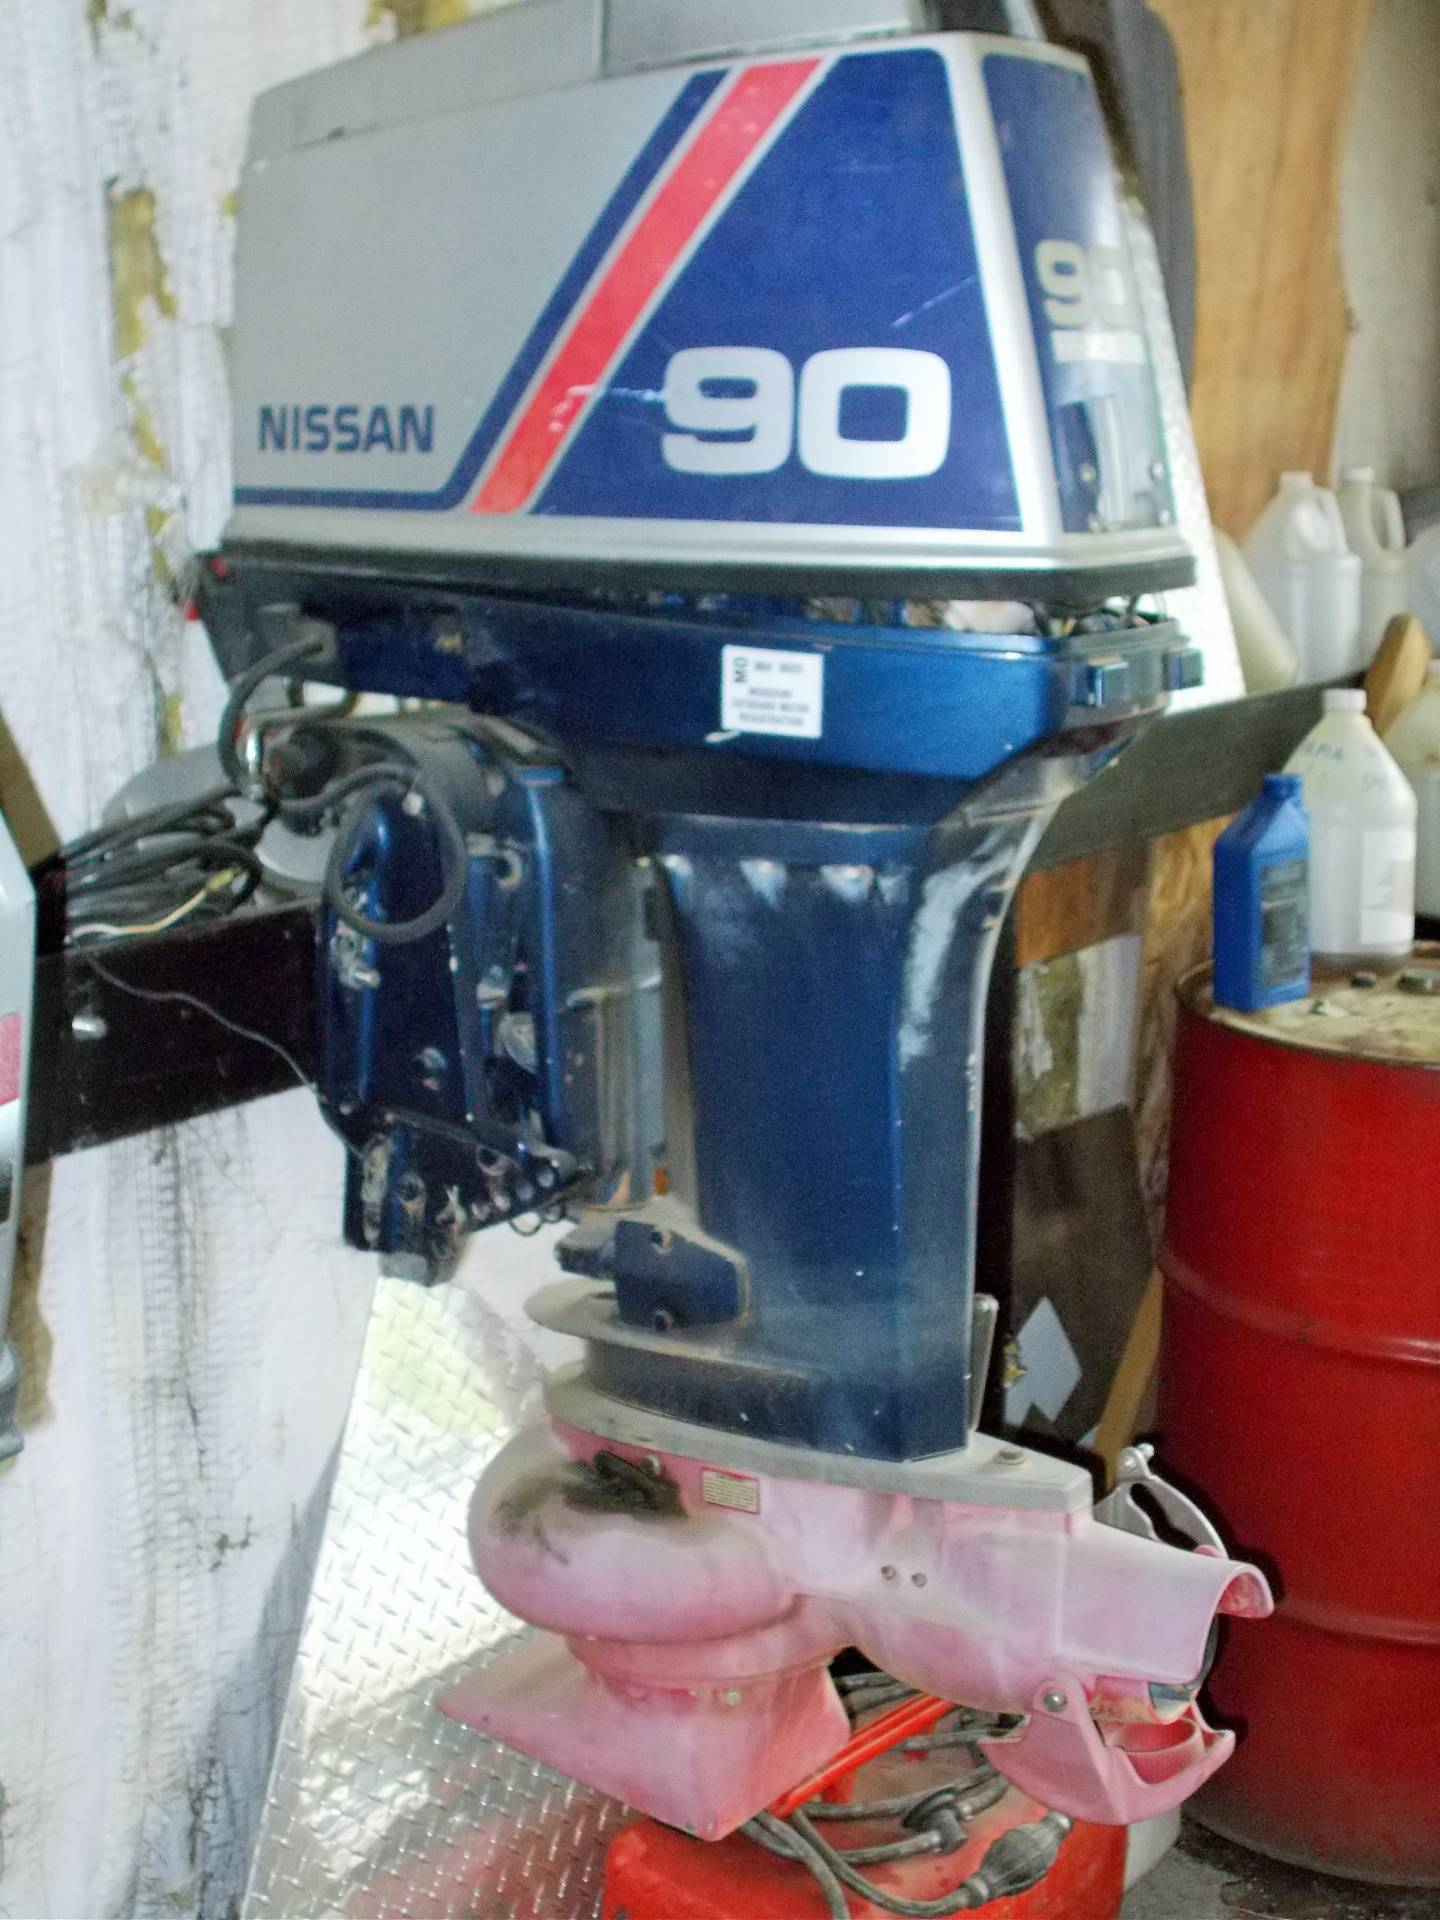 Nissan 90 JET-PARTS ONLY MOTOR in West Plains, Missouri - Photo 1